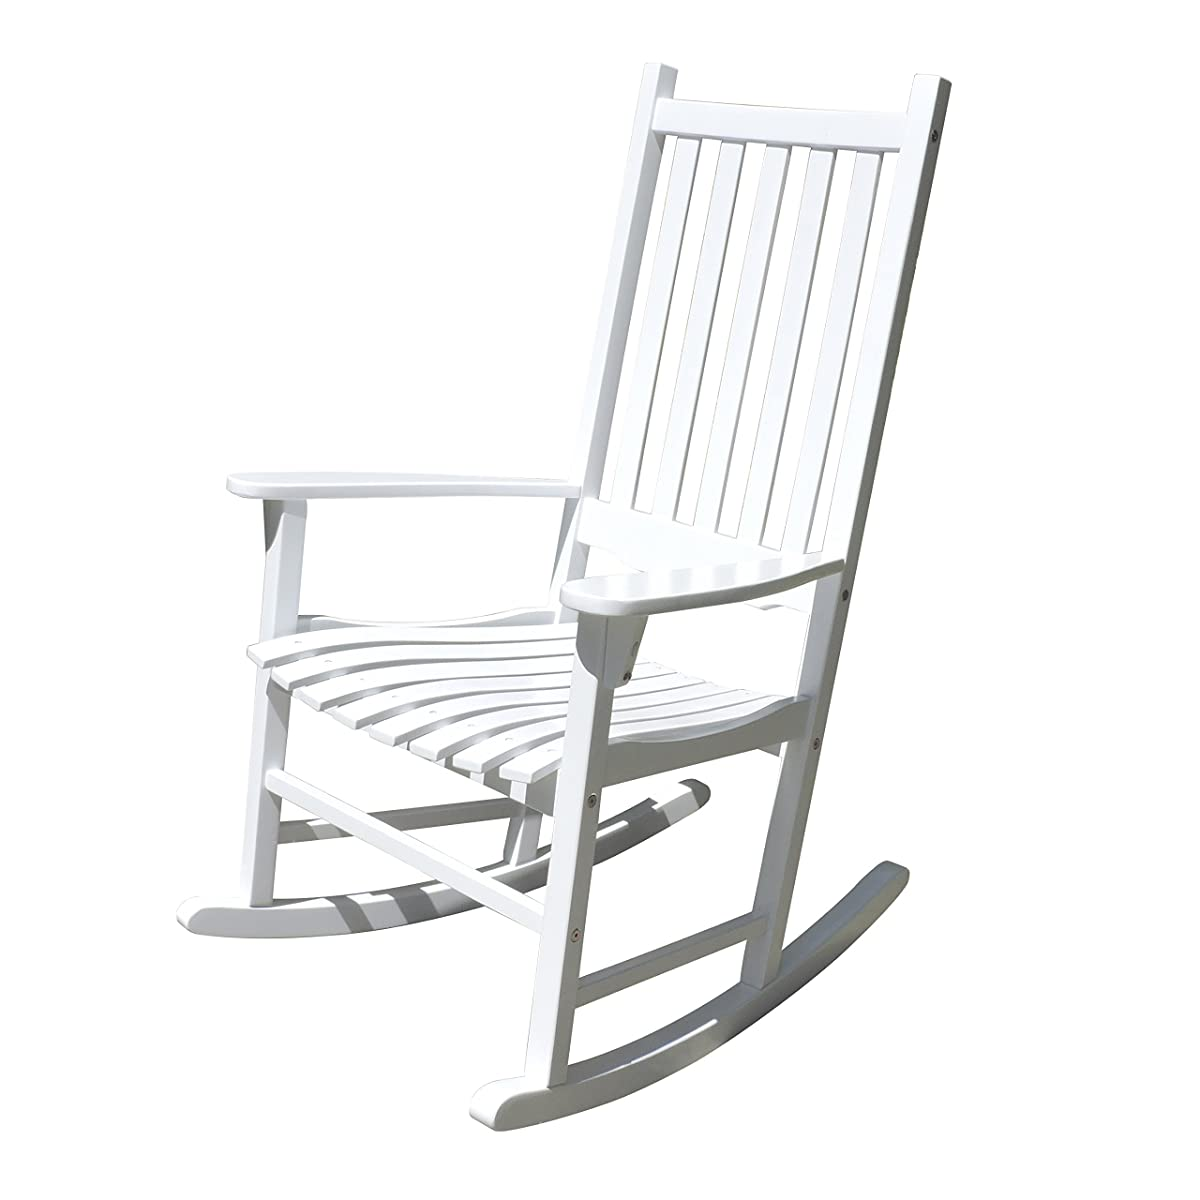 Merry Garden - White Porch Rocker/Rocking Chair Acacia Wood